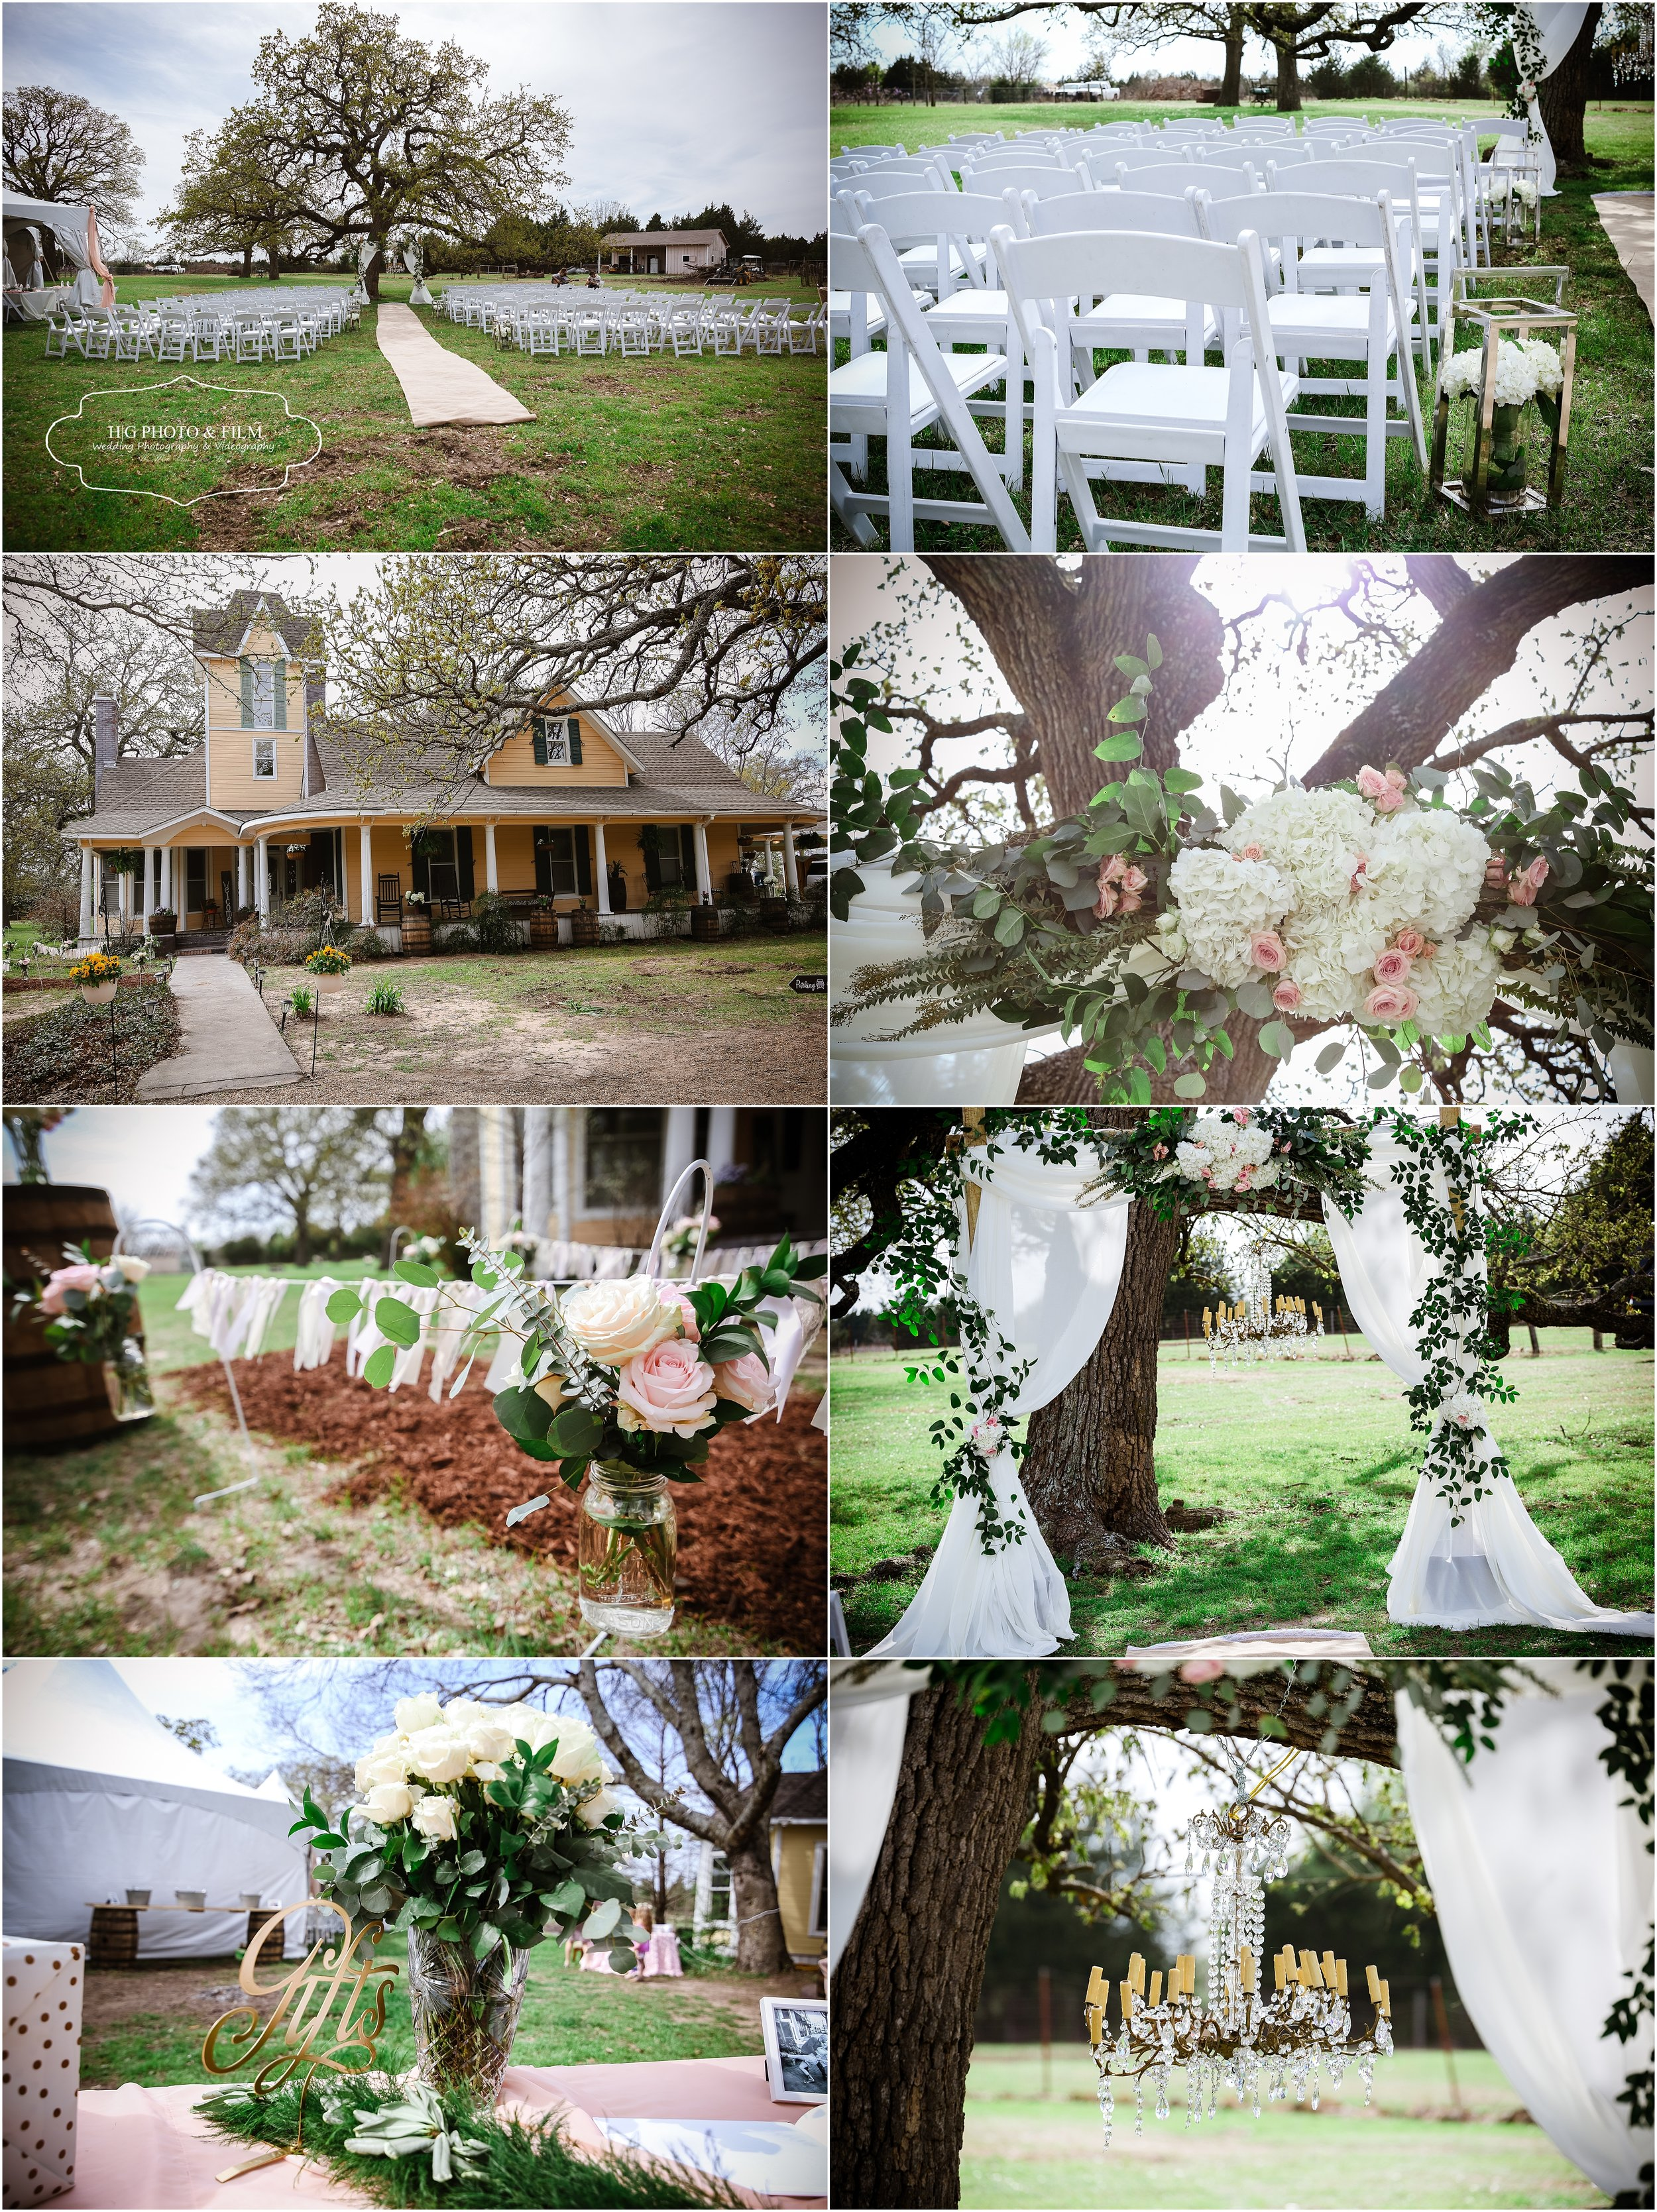 The details of this backyard wedding are everything!